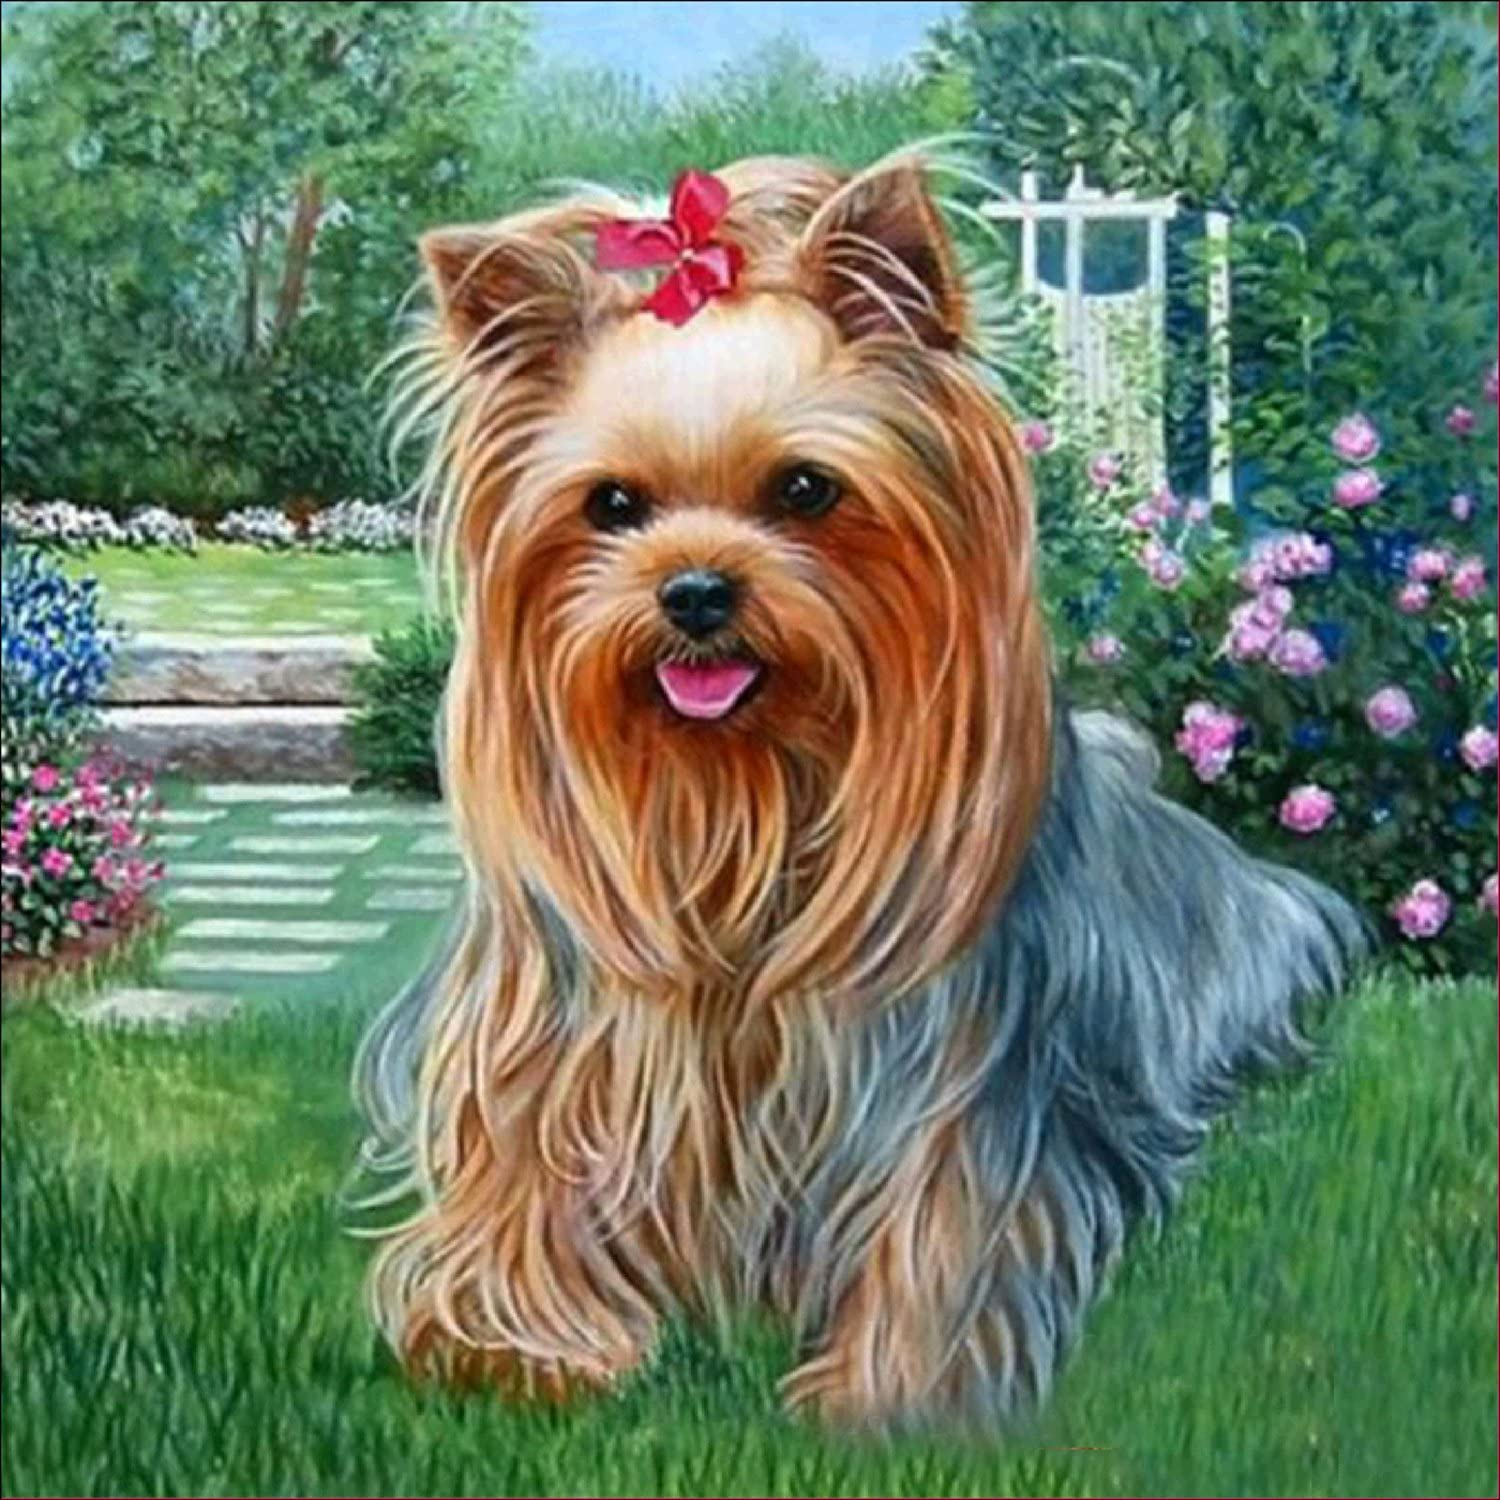 Cute Pet Dog 5D DIY SquareRound Diamond Painting Diamond Embroidery Mural Rhinestone Picture Mosaic Painting Home Decoration Gift